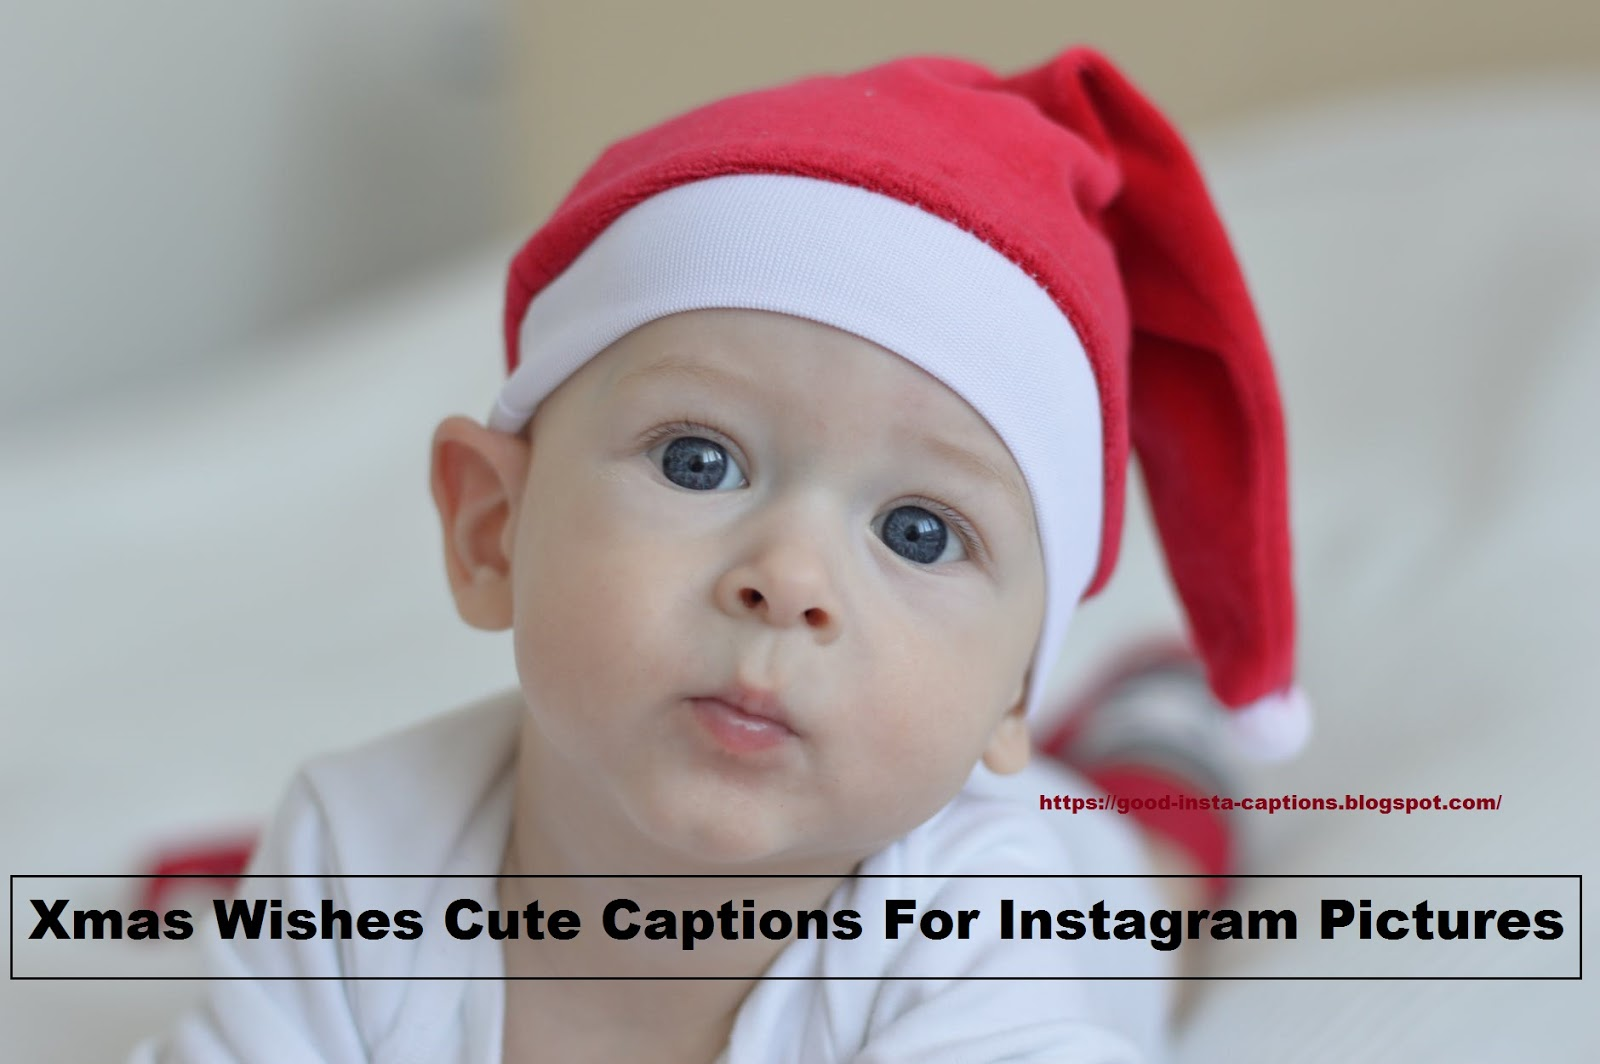 Xmas Wishes Cute Captions For Instagram Pictures